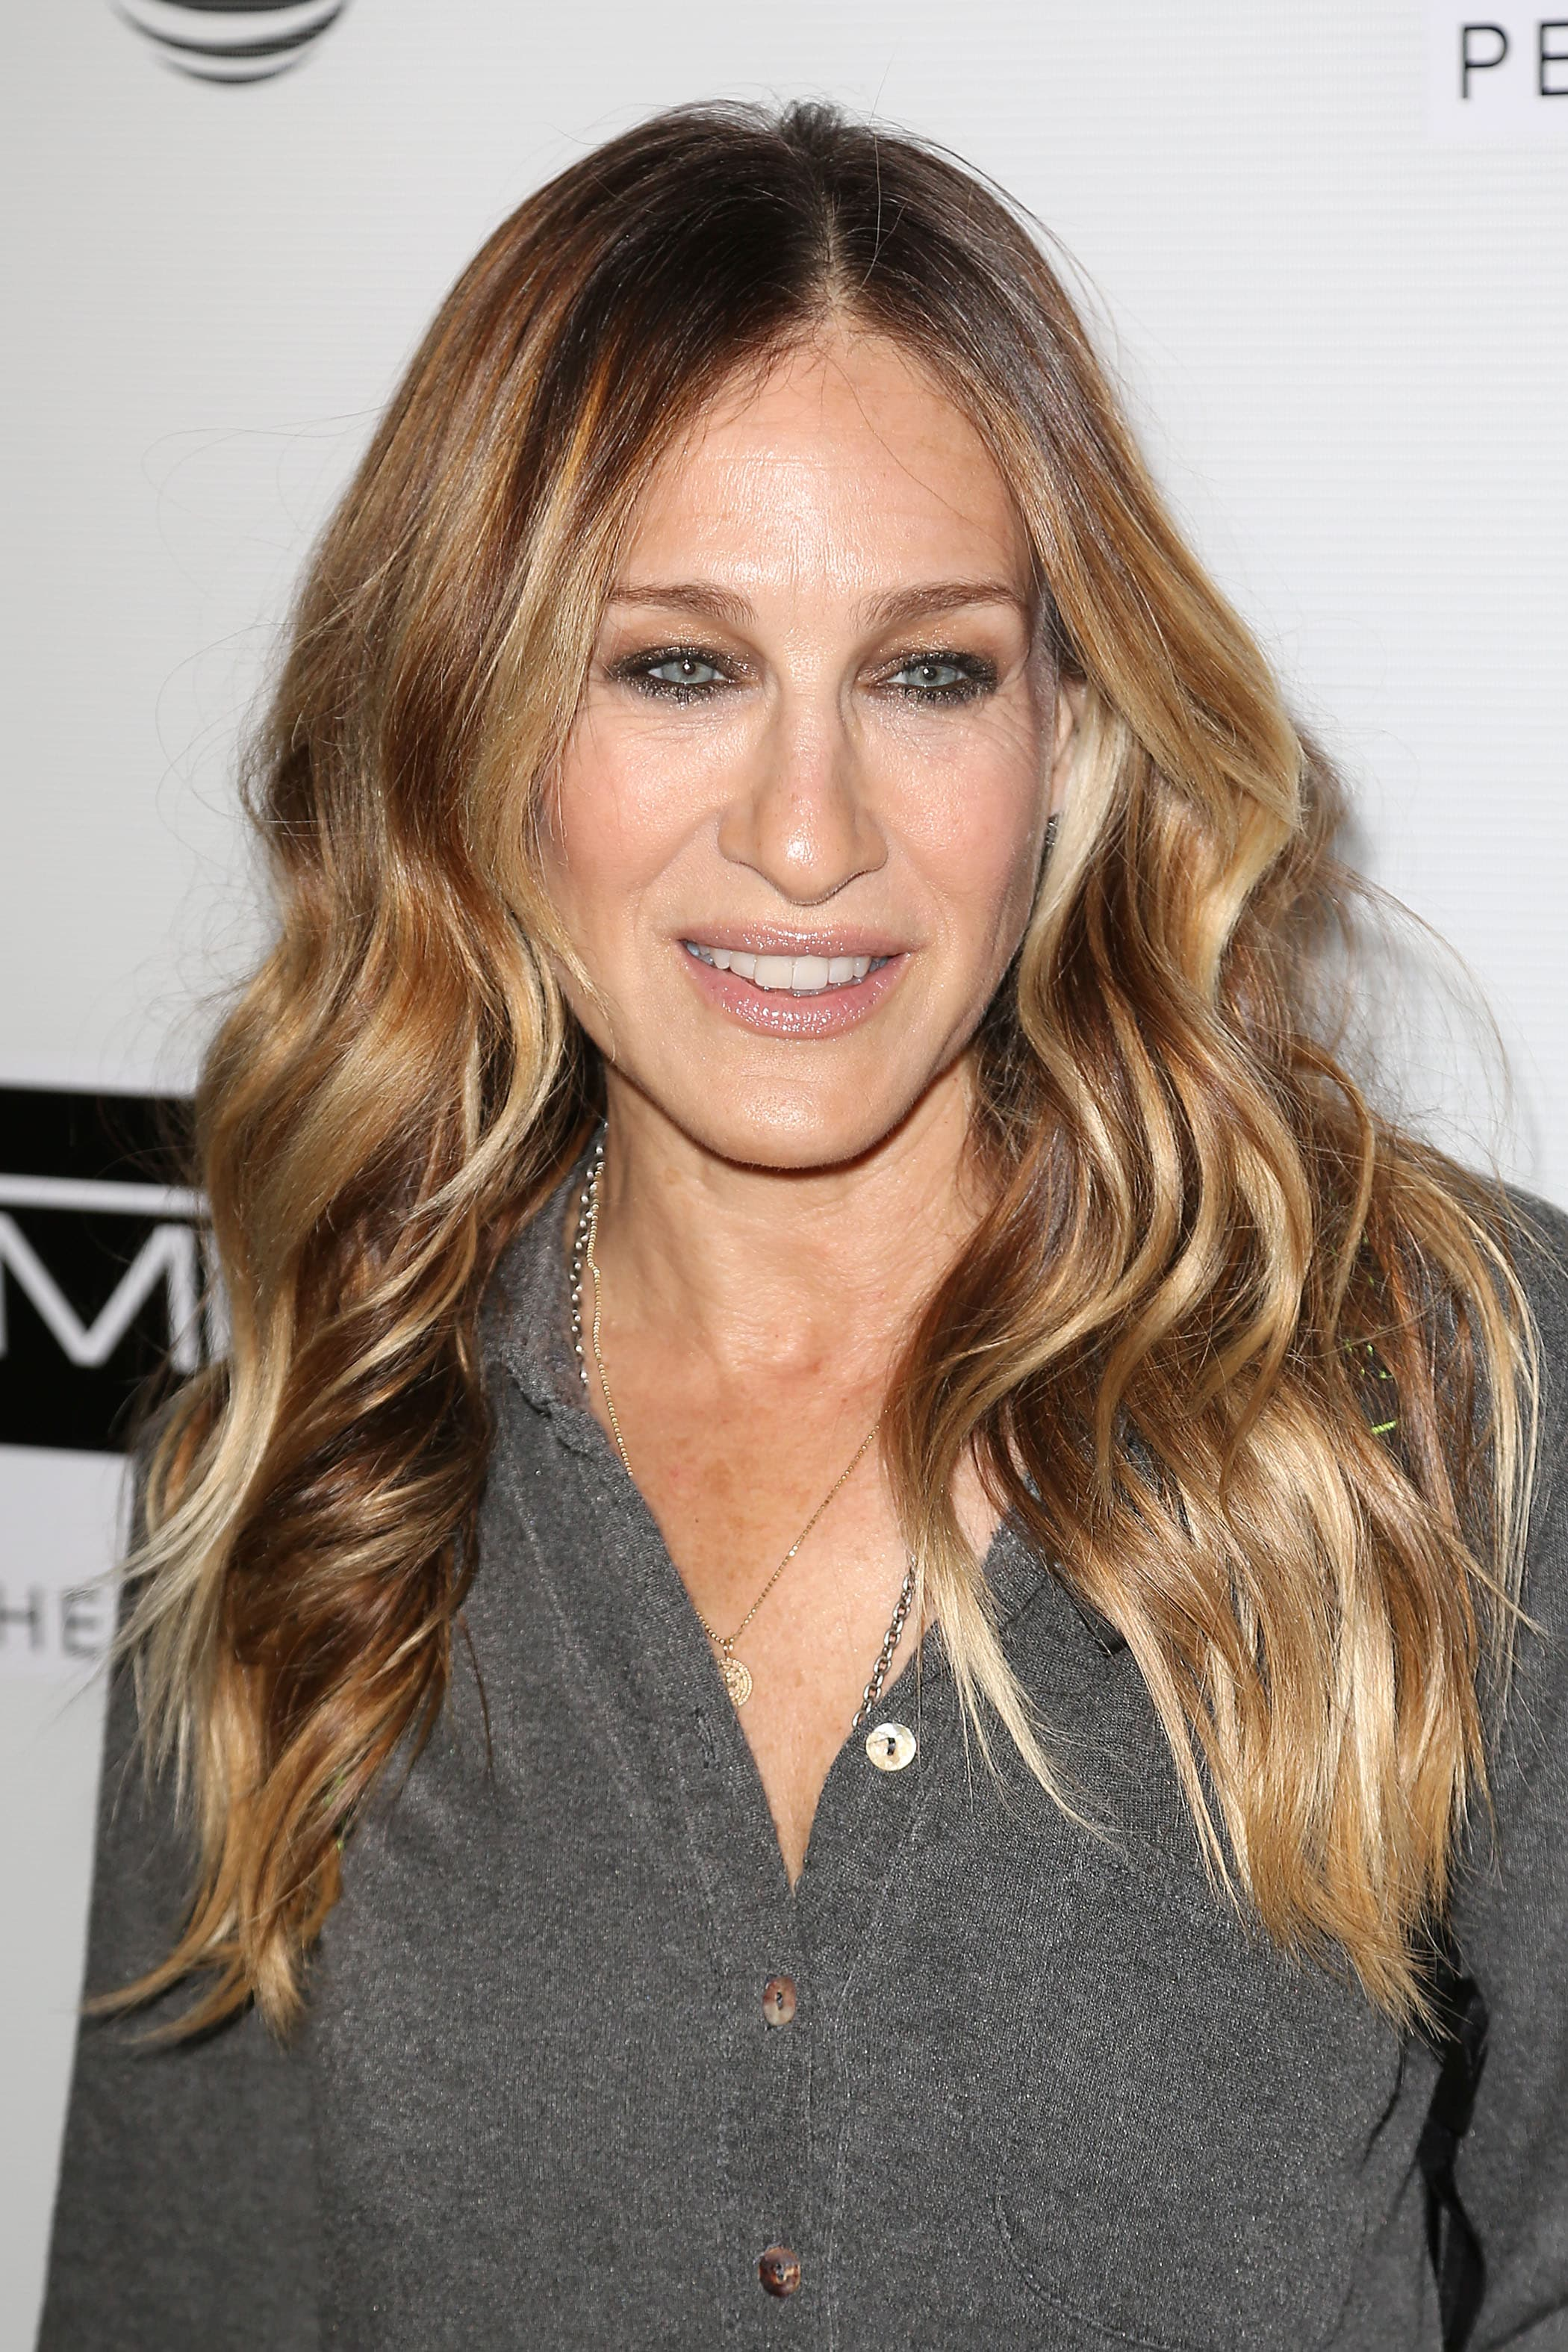 Brown hair with blonde highlights: Sarah Jessica Parker with long wavy bronde hair with highlights, wearing a grey shirt